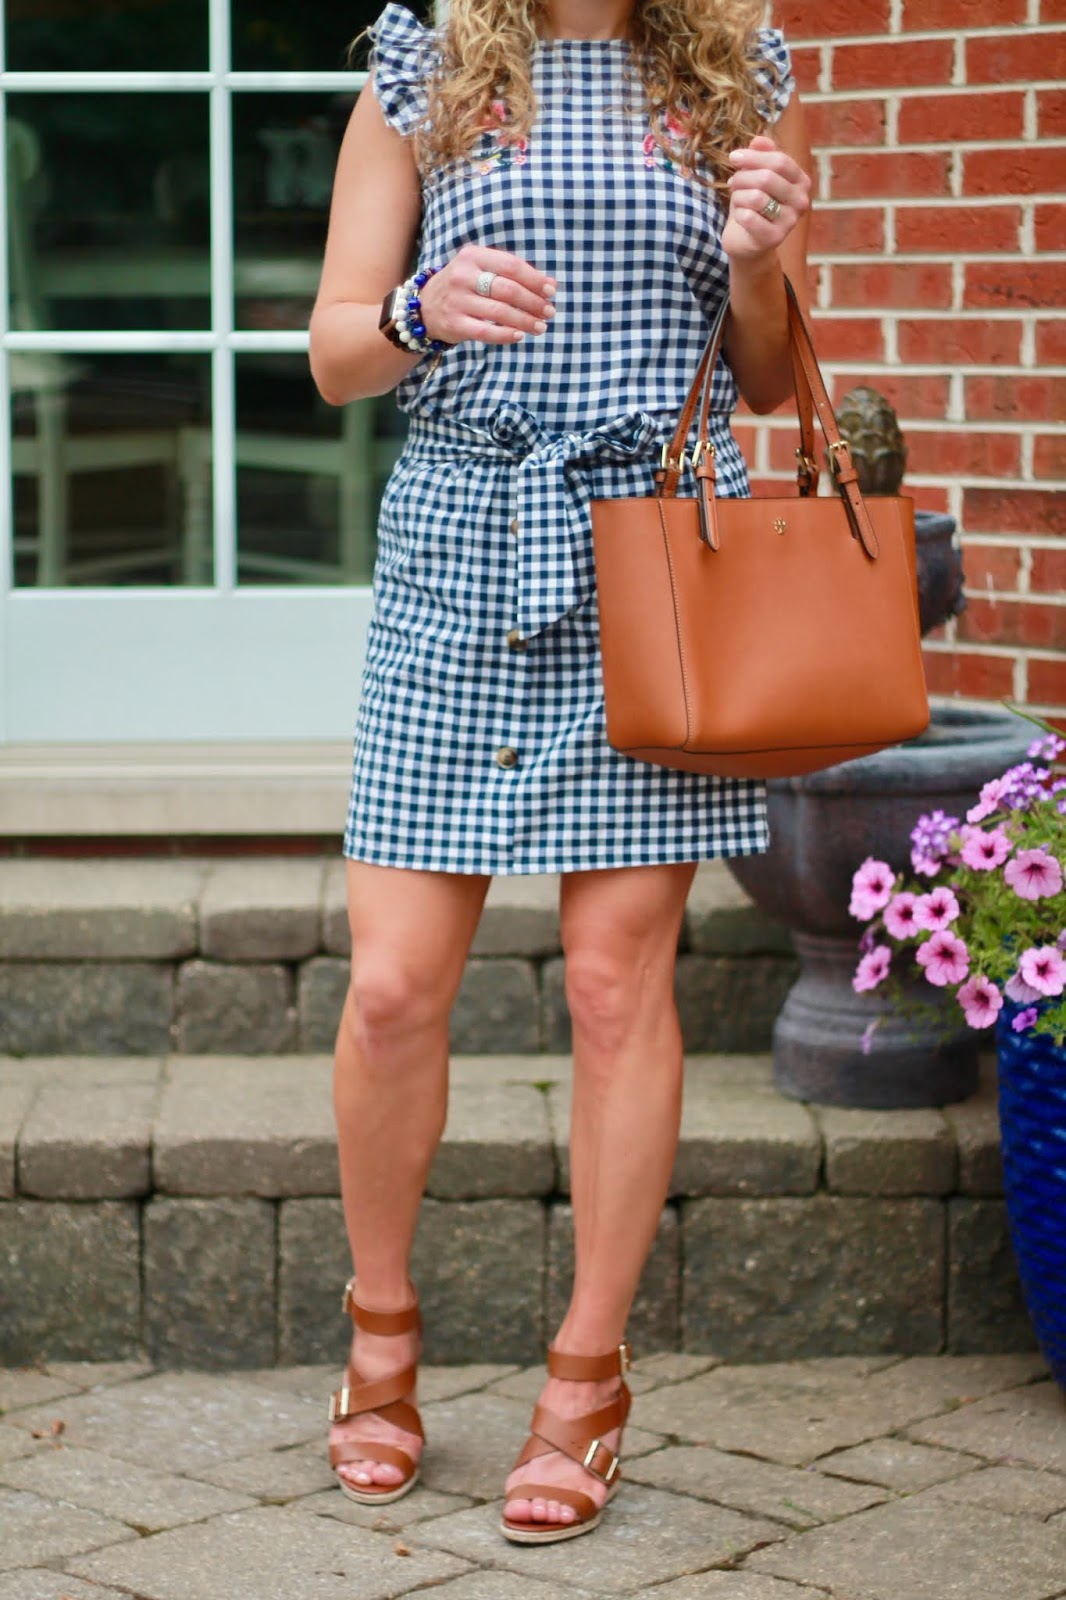 embroidered gingham top, gingham skirt, cognac leather sandals, Tory Burch tote, summer gingham outfit